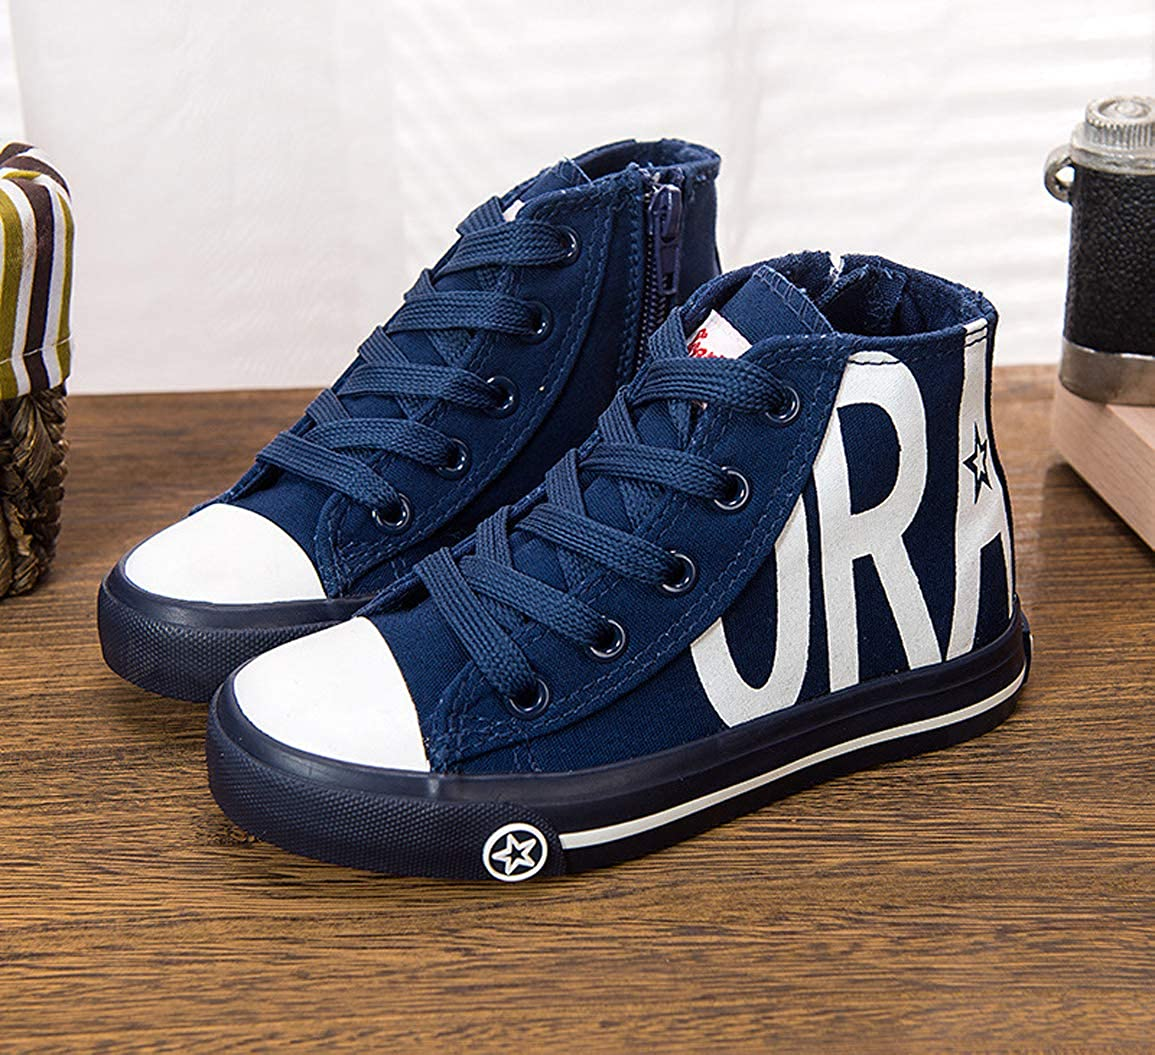 iDuoDuo Boys Girls Classic School High Top Lace Up Canvas Shoes Sneakers Toddler//Little Kid//Big Kid